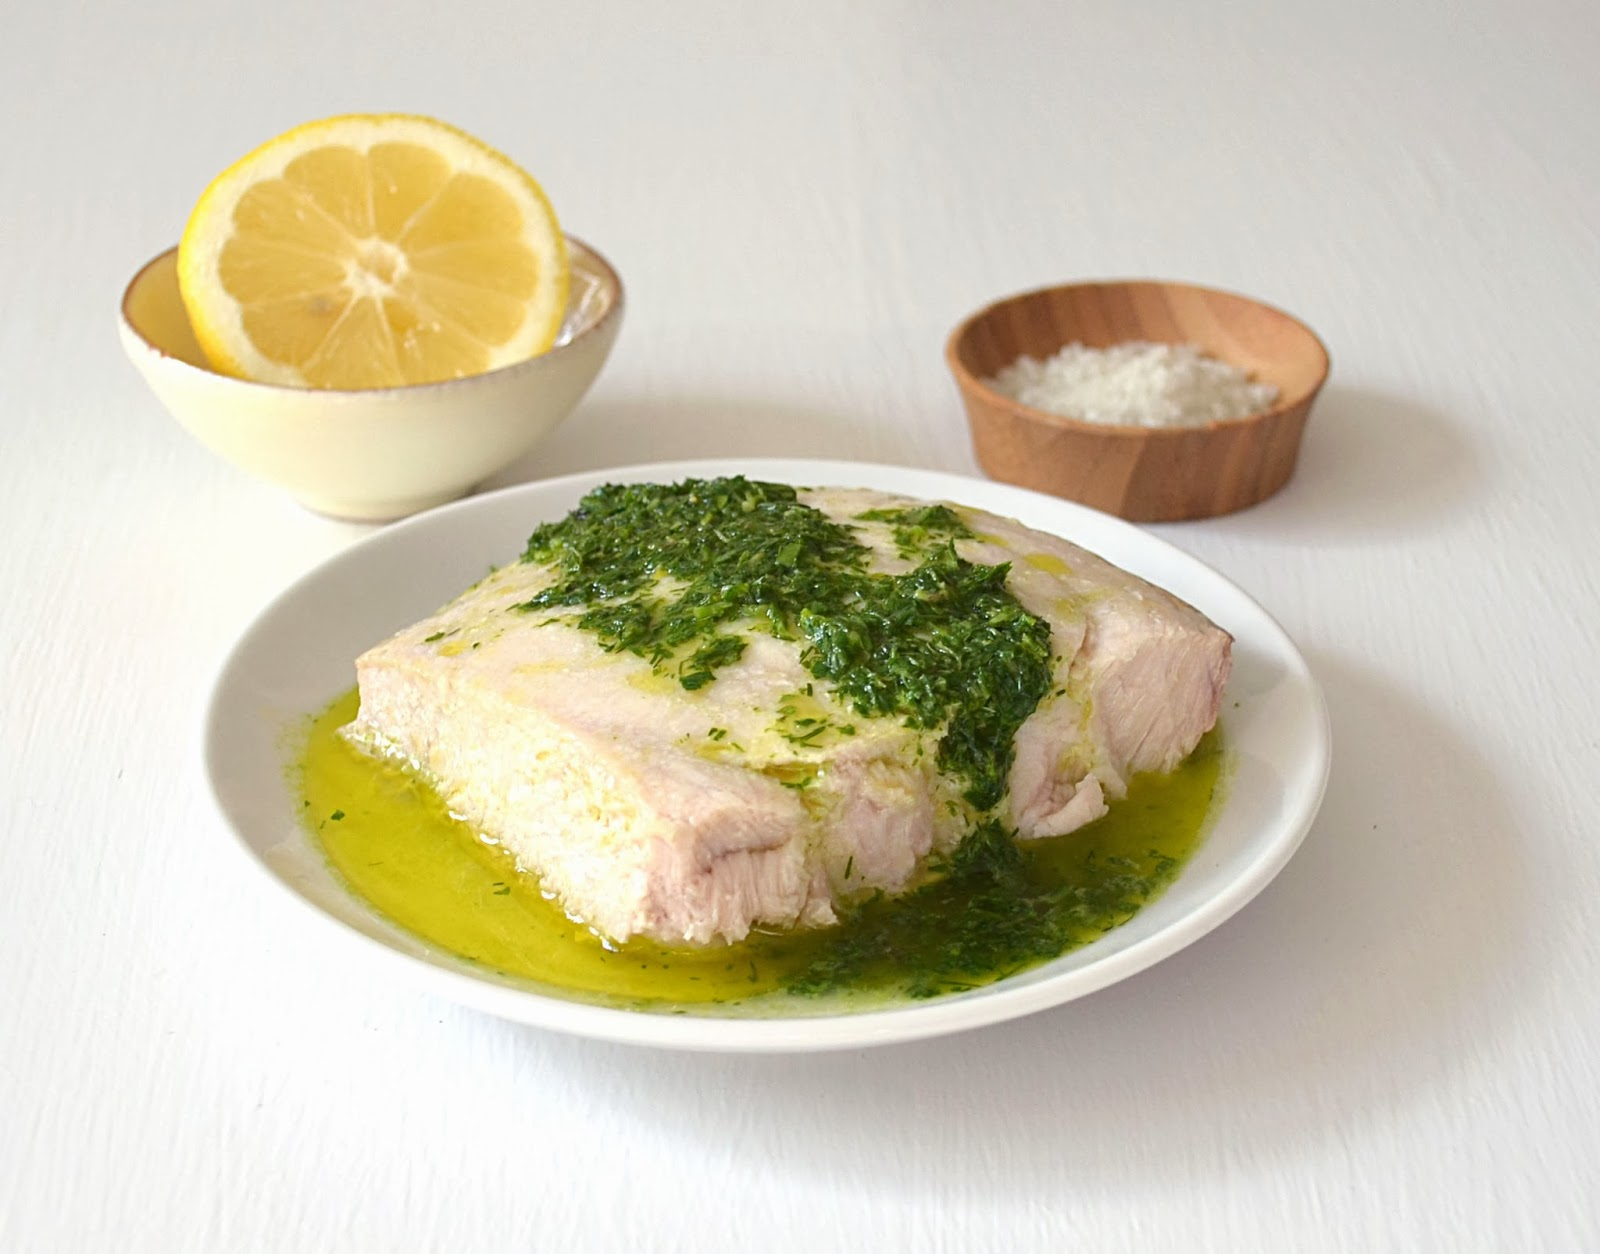 Jilly inspired baked fish with lemon herb sauce for Sauce for baked fish